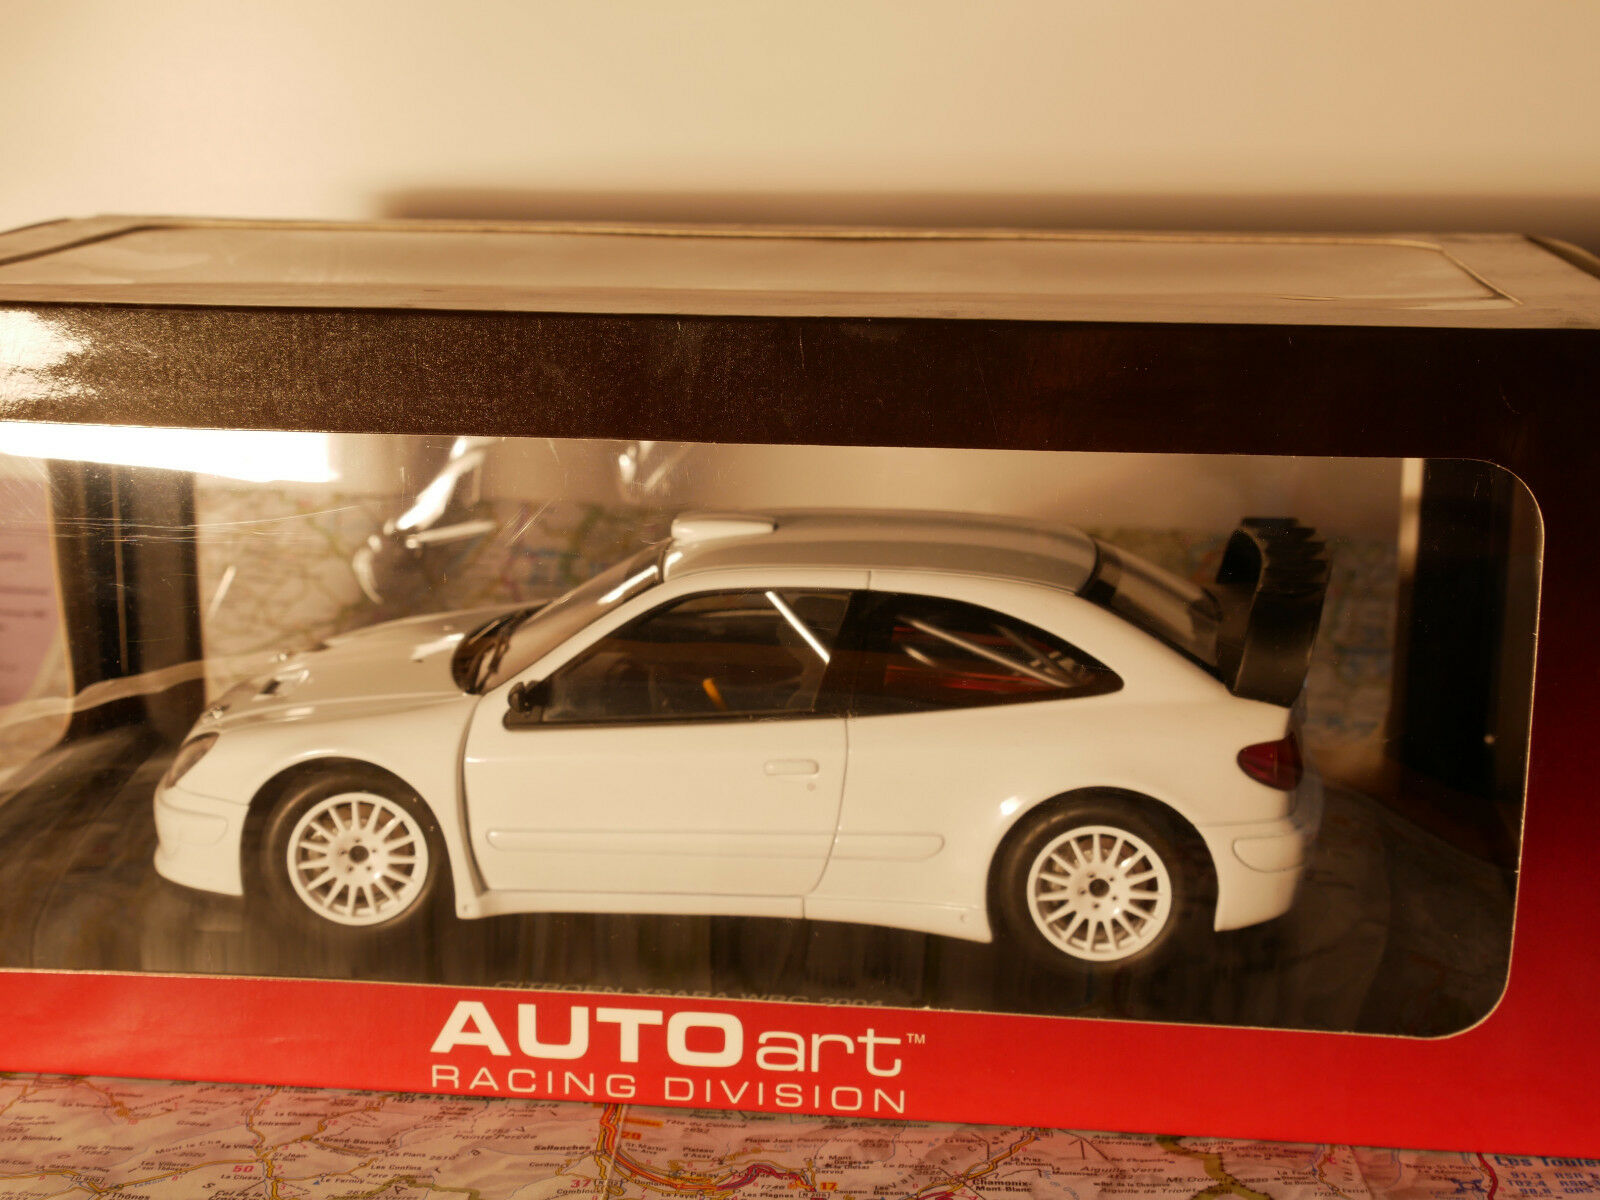 AUTO ART 2004 XSARA WRC PLAIN BODY VERSION  bianca  1:18  NEW